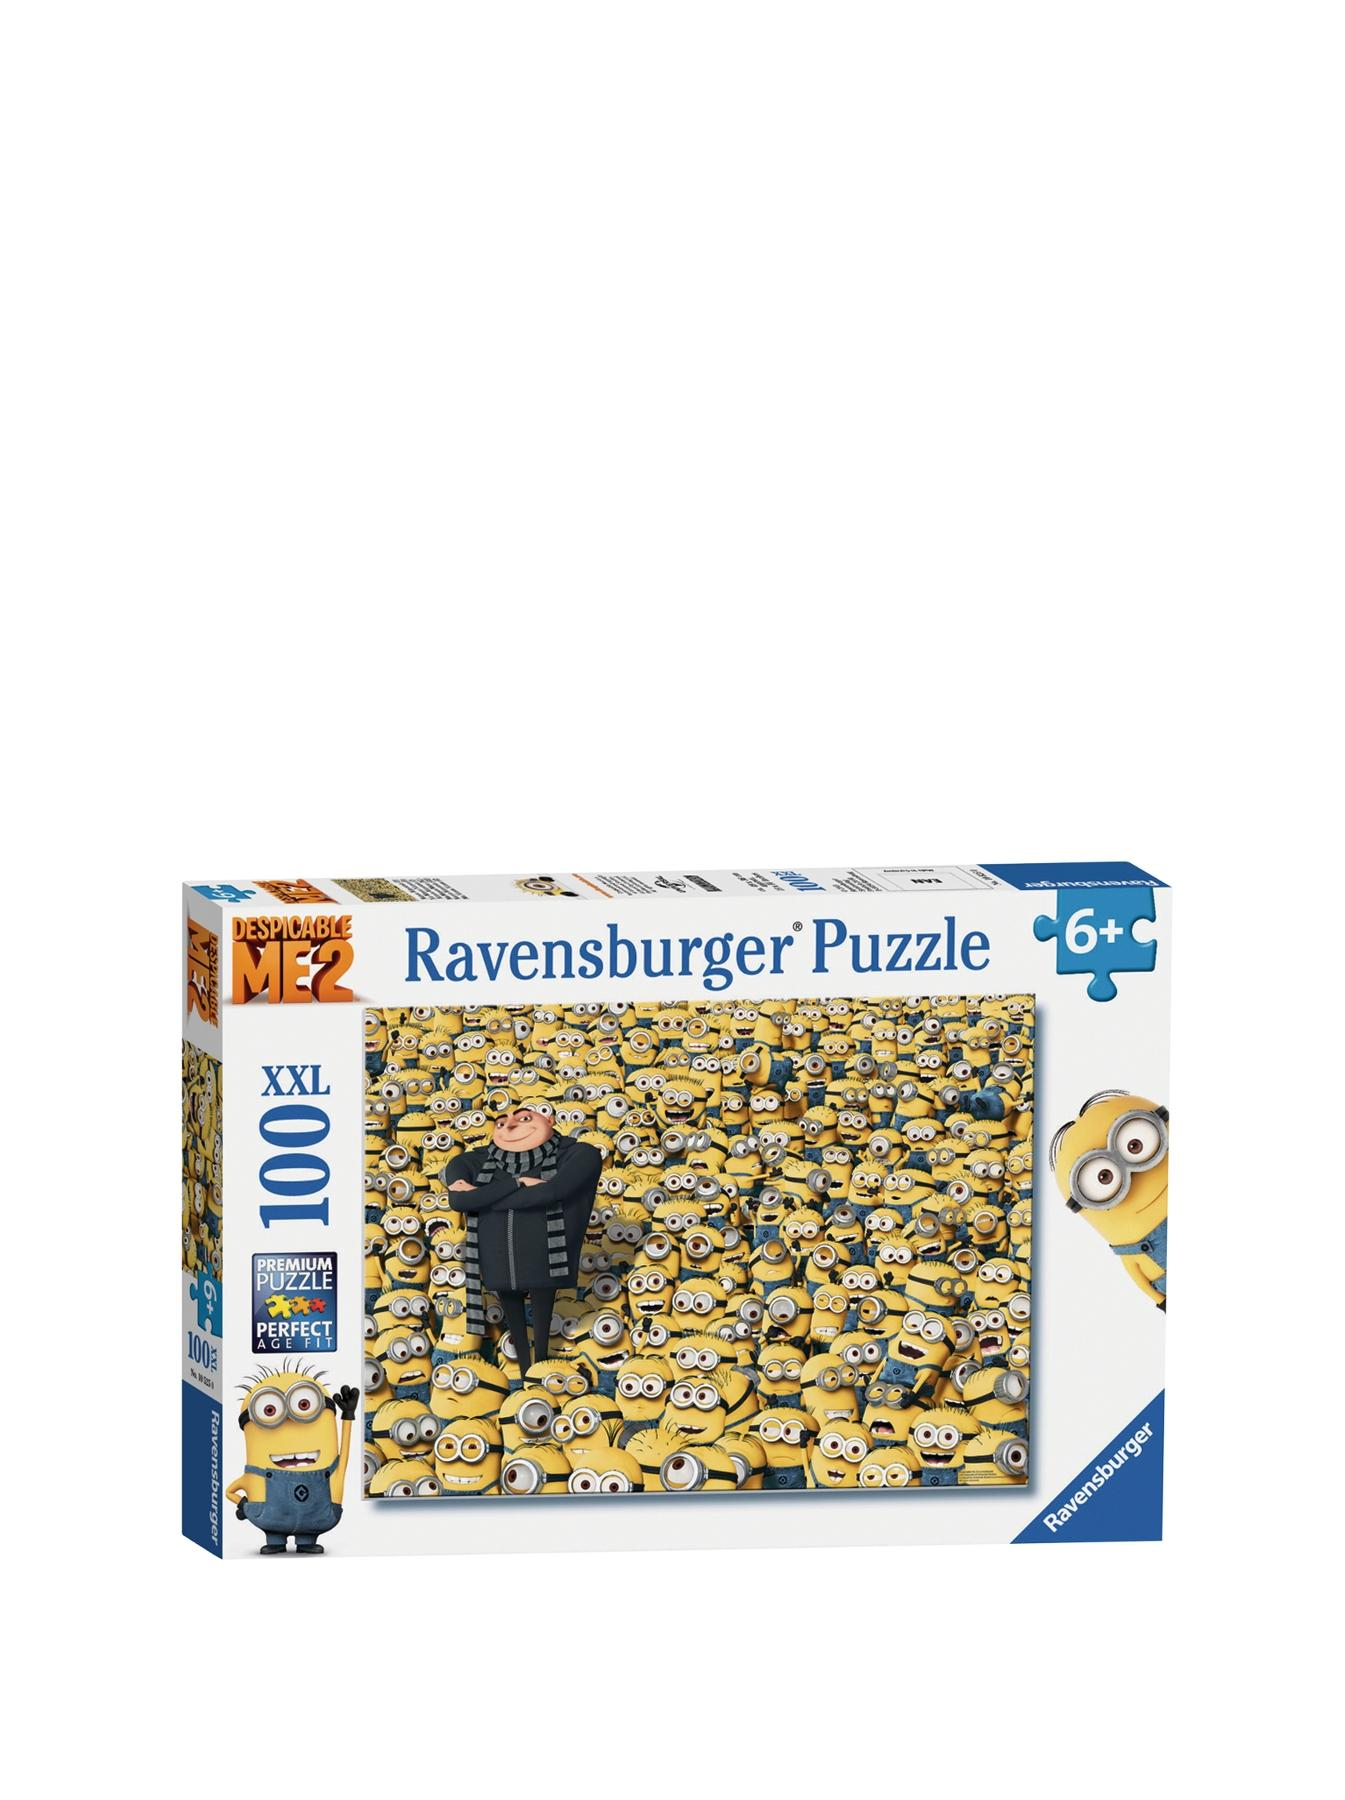 Despicable Me 2, XXL 100 Piece Jigsaw Puzzle